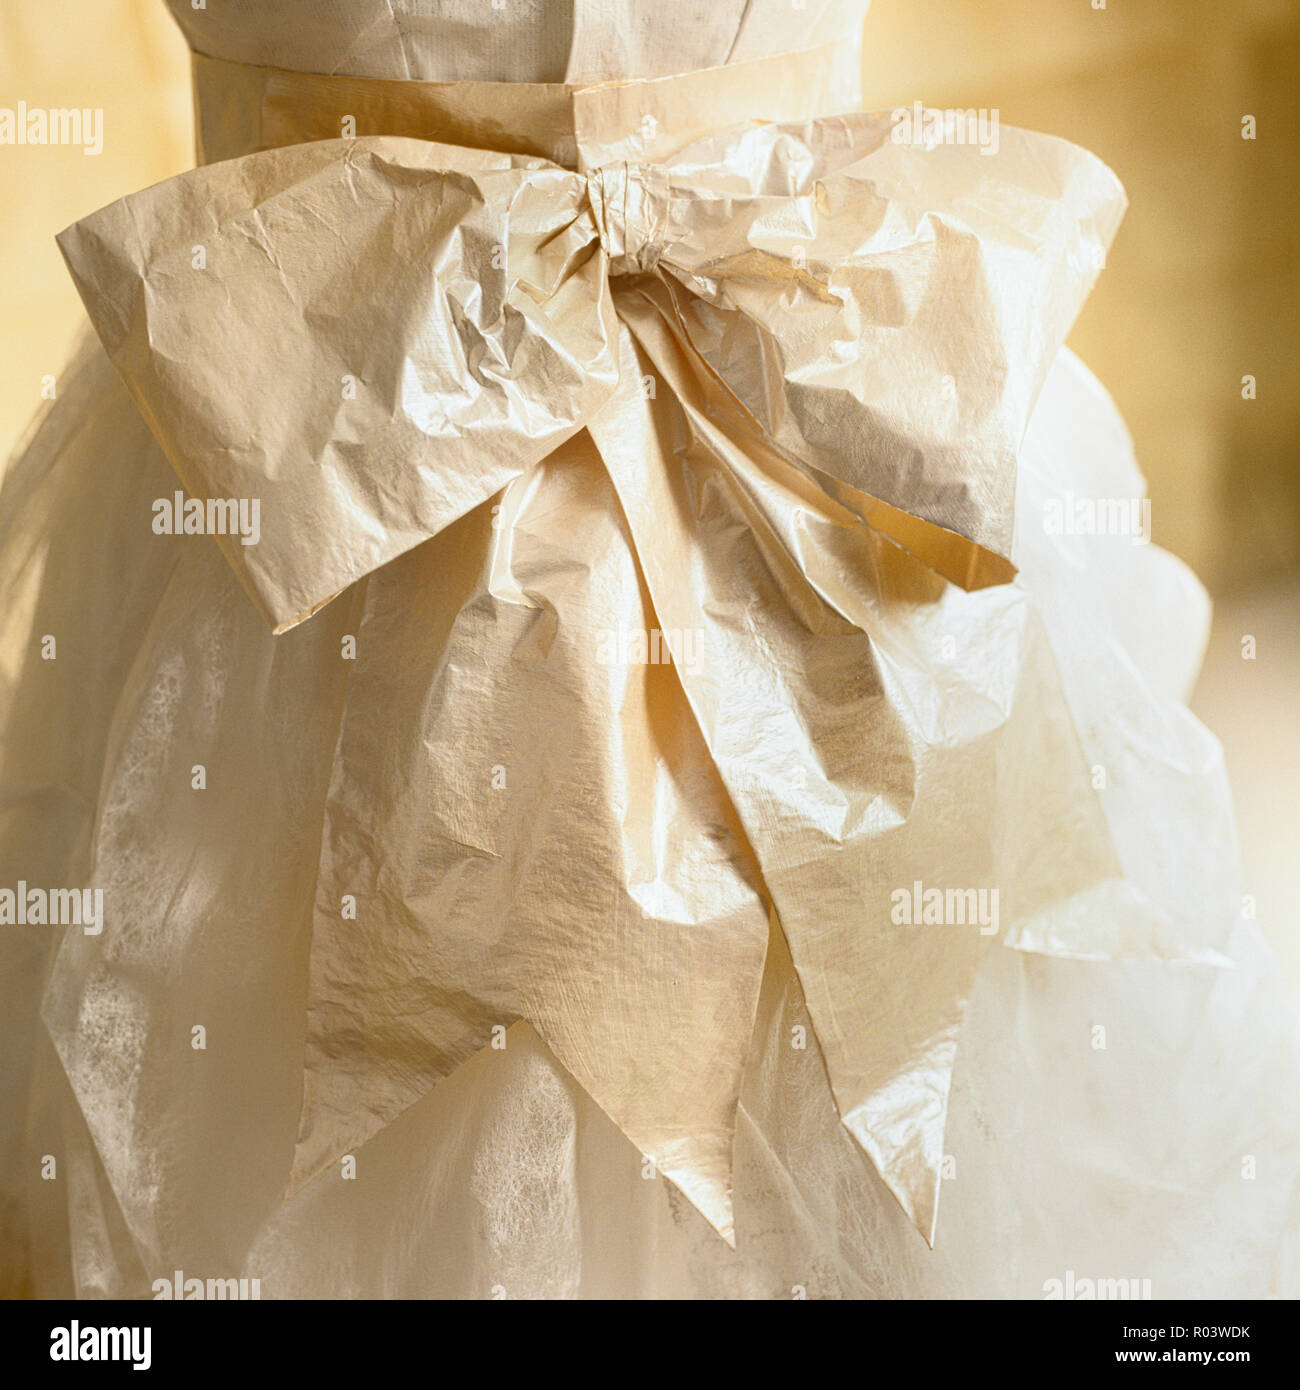 Bow on a paper dress by Isabelle de Borchgrave - Stock Image